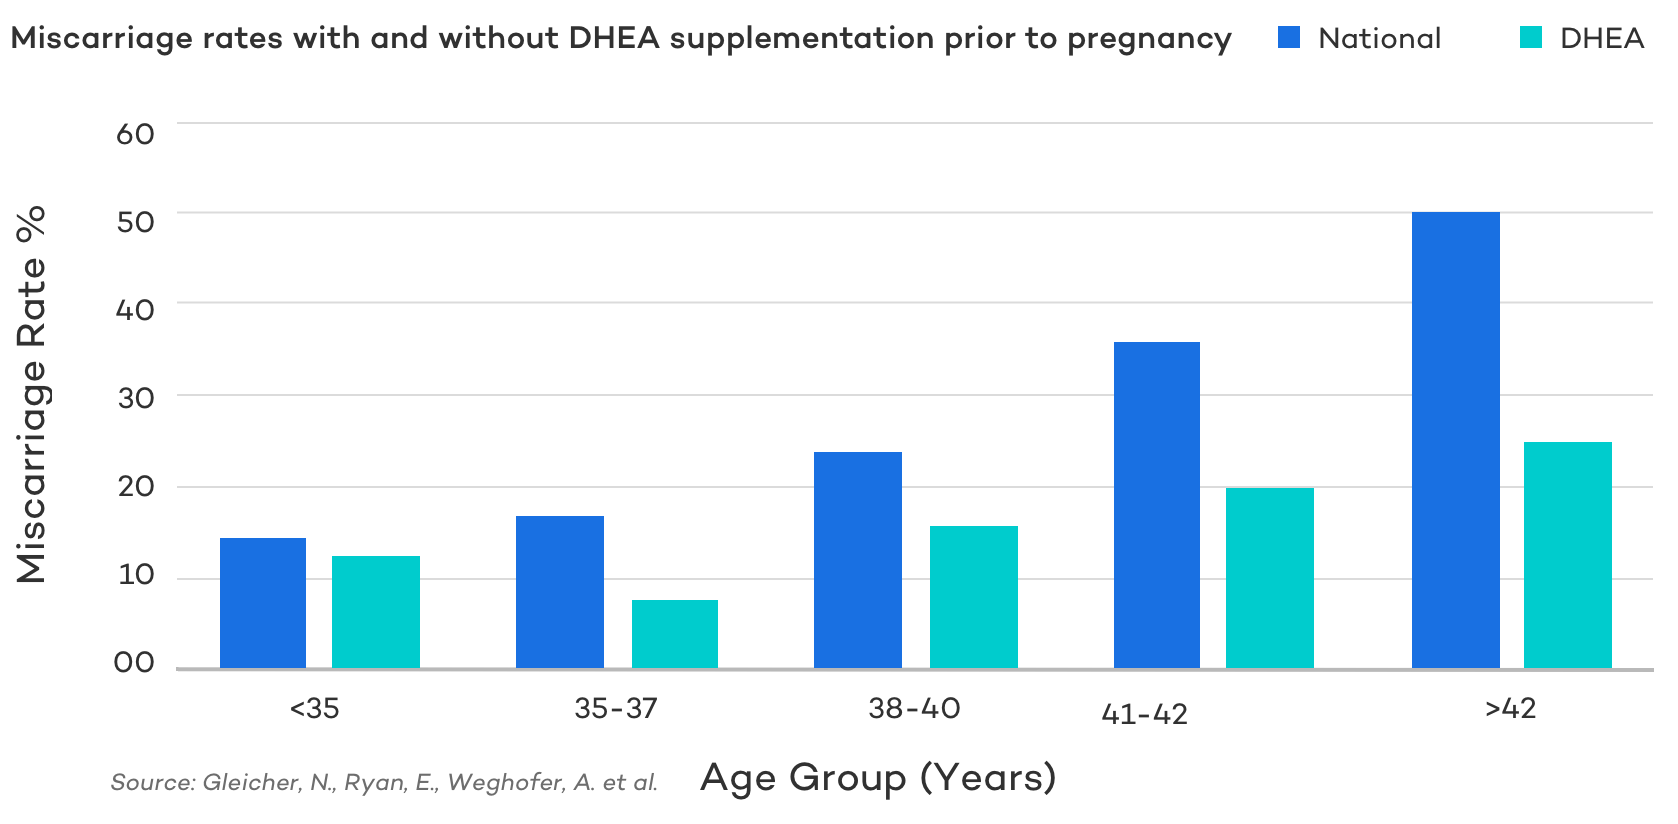 Miscarriage Rate with DHEA Supplementation